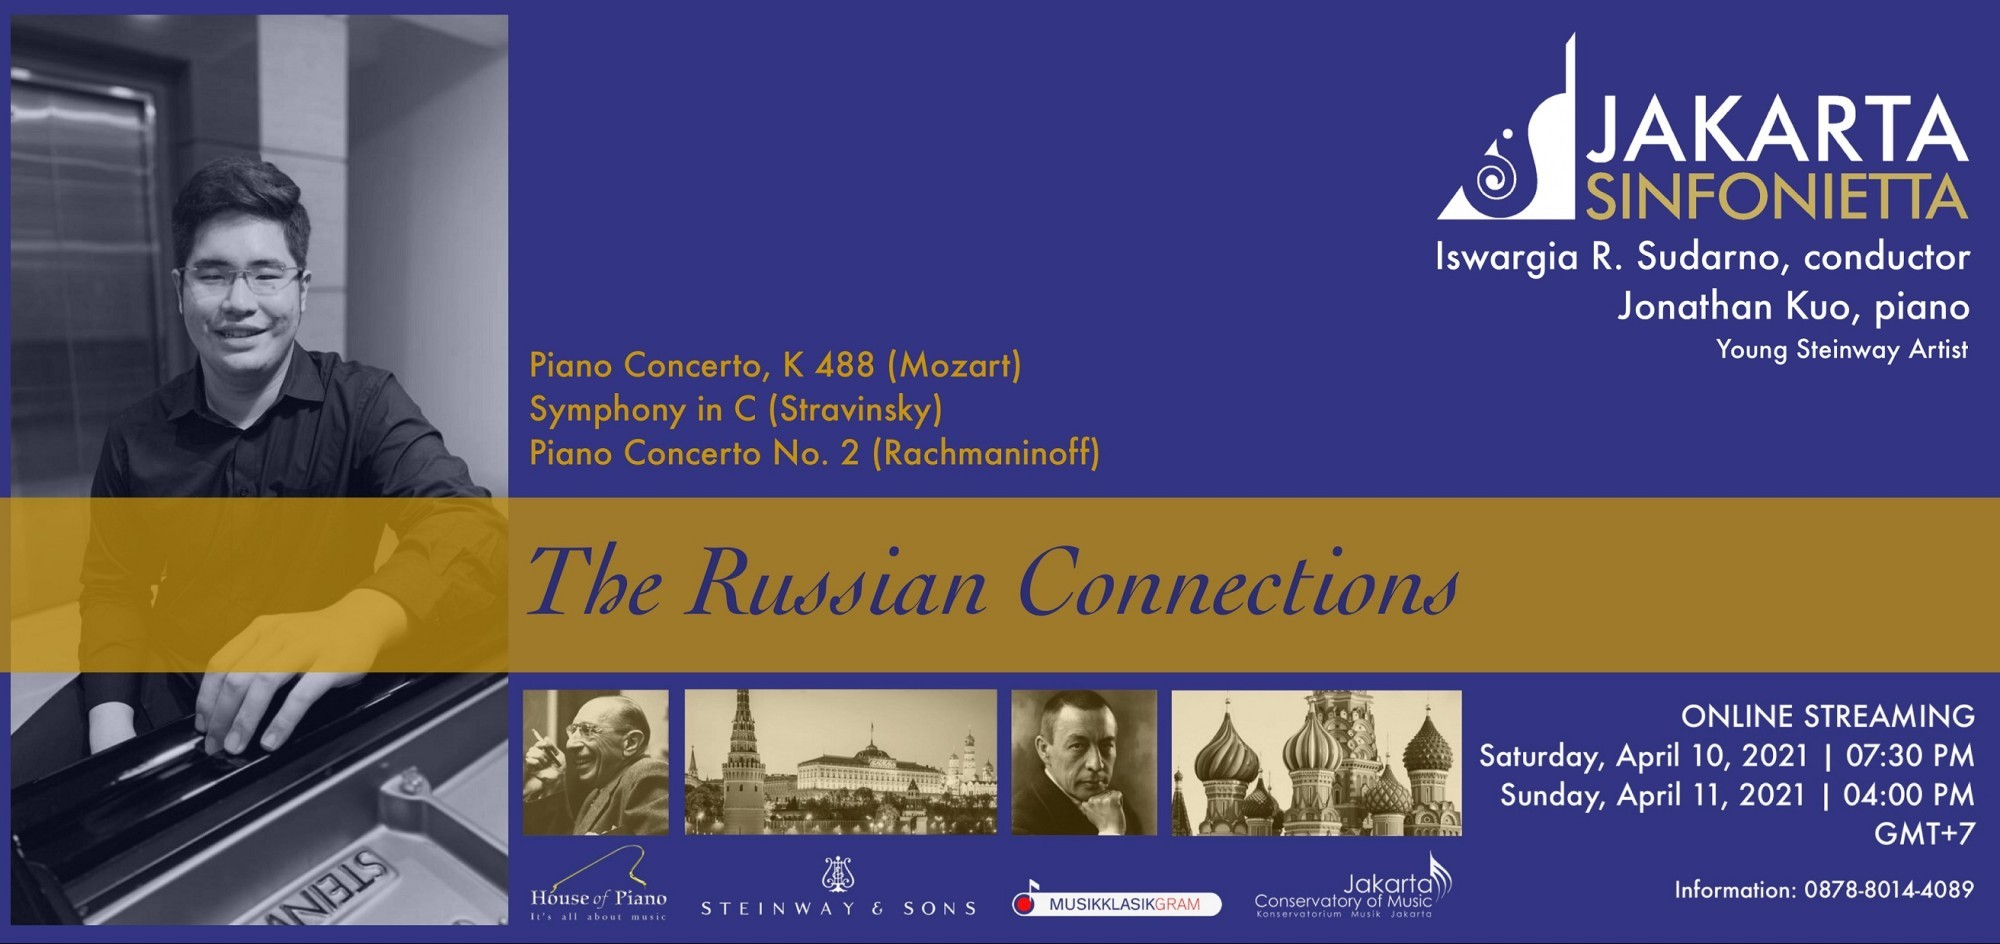 Jakarta Sinfonietta & Jonathan Kuo (Young Steinway Artist) - The Russian Connections 11/01/21